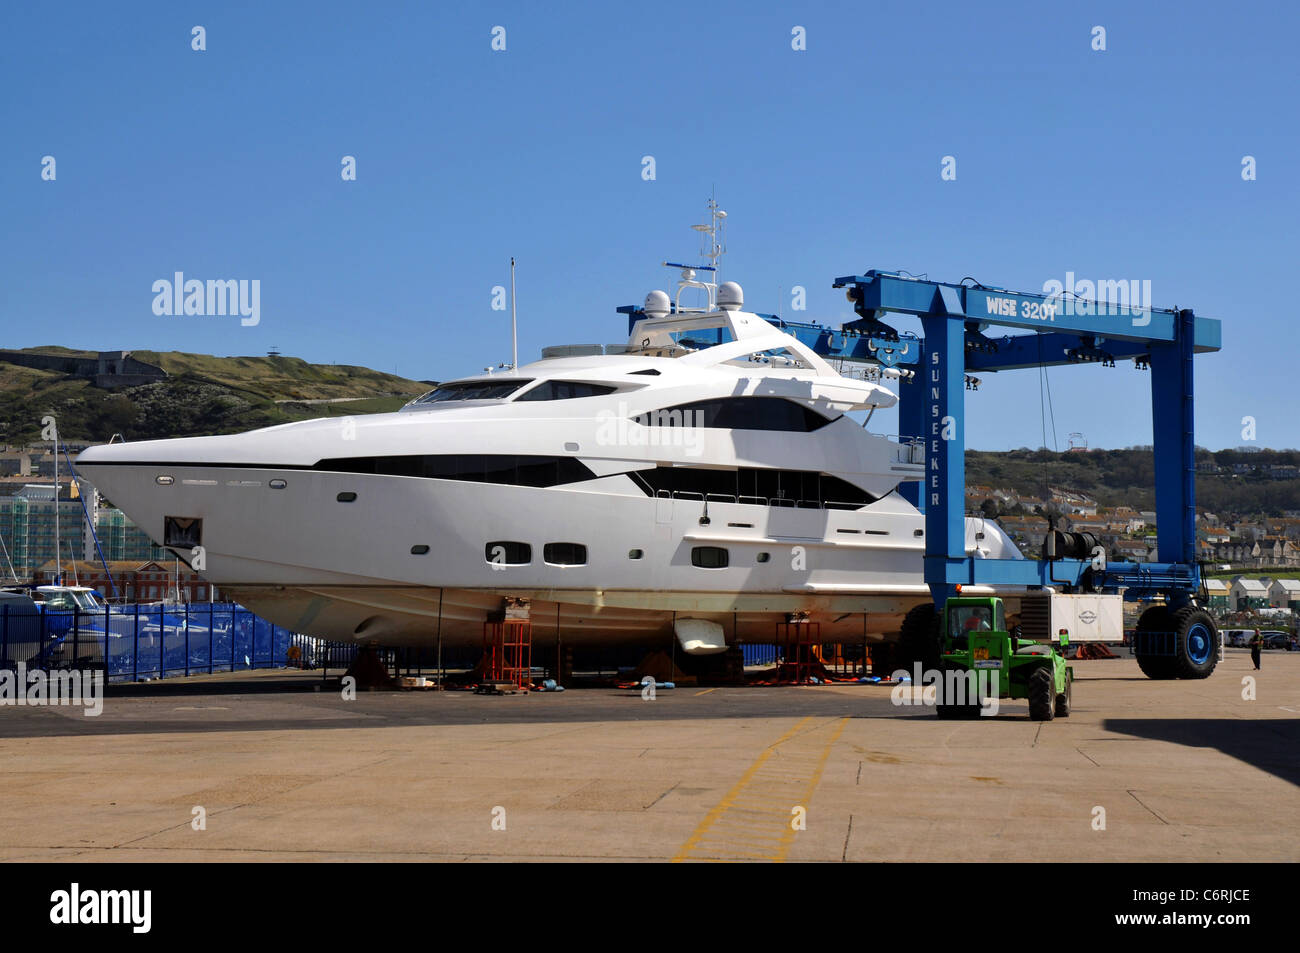 Sunseeker luxury yacht being moved in a 50 Tonne cradle at Portland in Dorset. UK - Stock Image